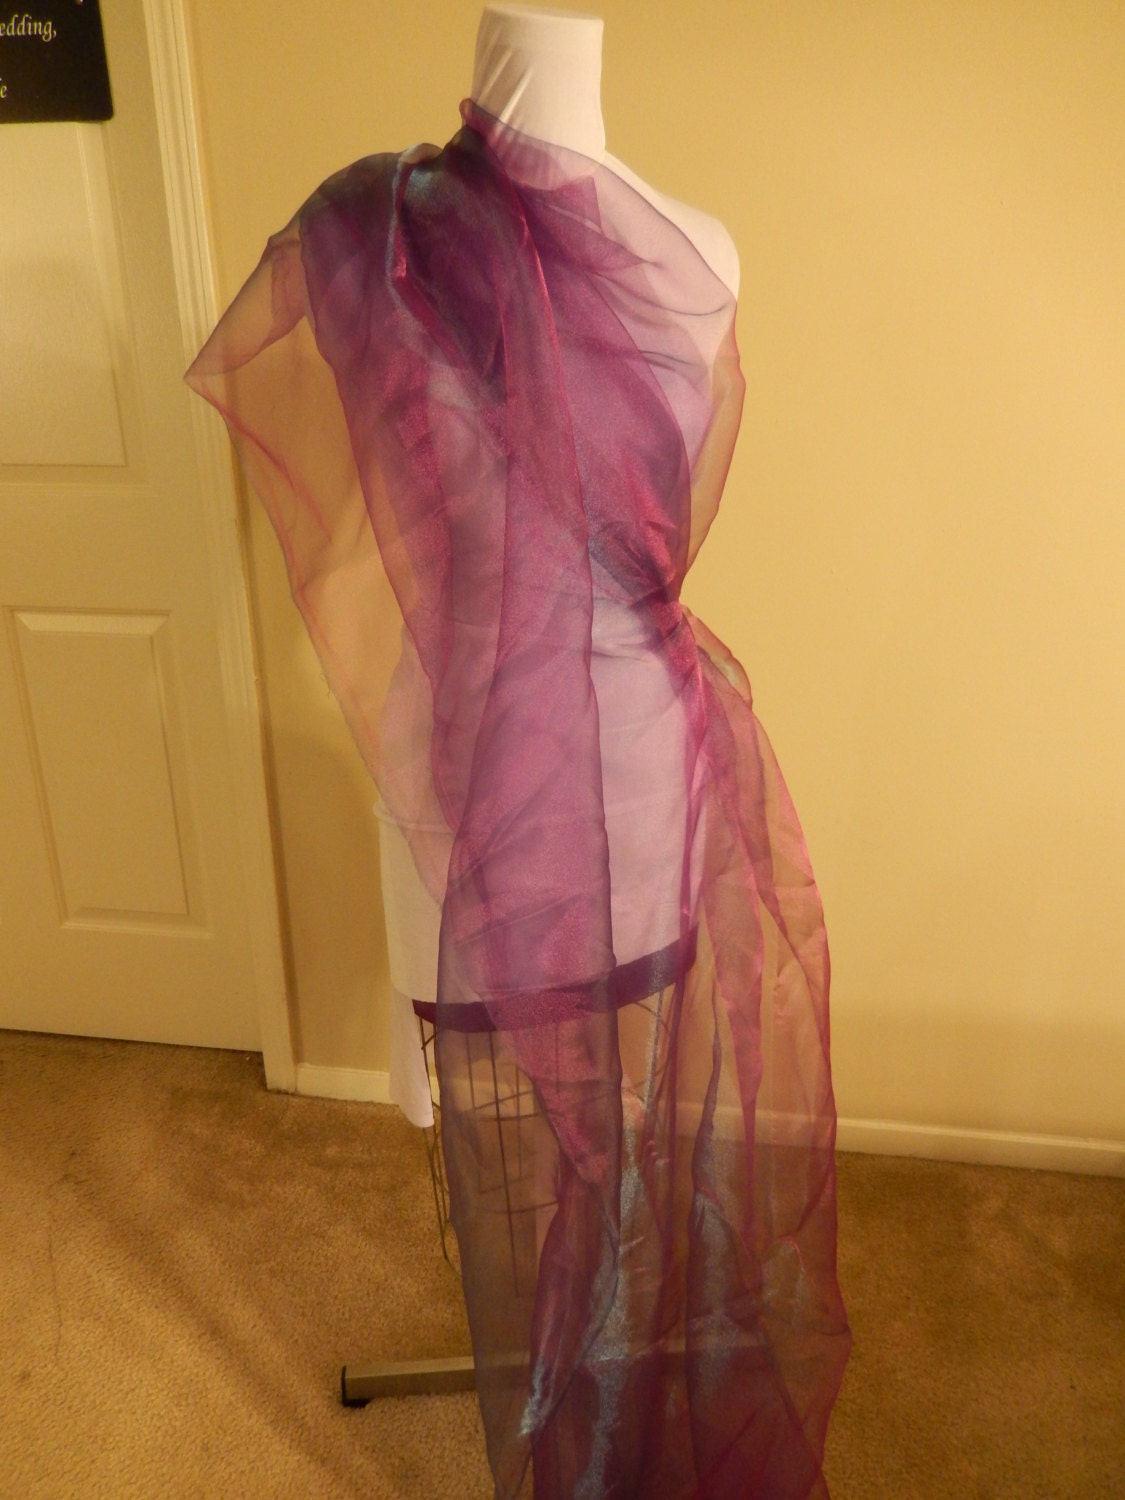 Purple Teal Iridescent Organza Fabric From